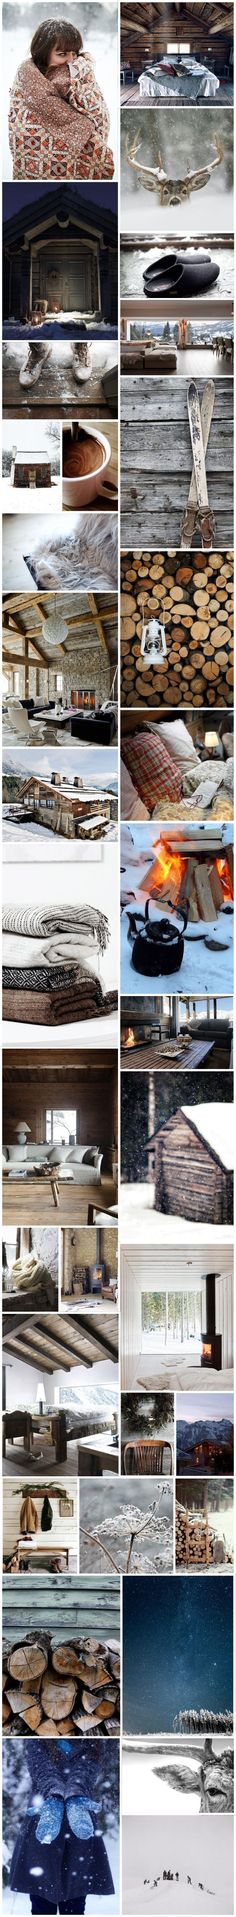 MOODBOARD | MY PERFECT WINTER CABIN – looks almost like a cup of Pittenweem Chocolate Co. hot chocolate!